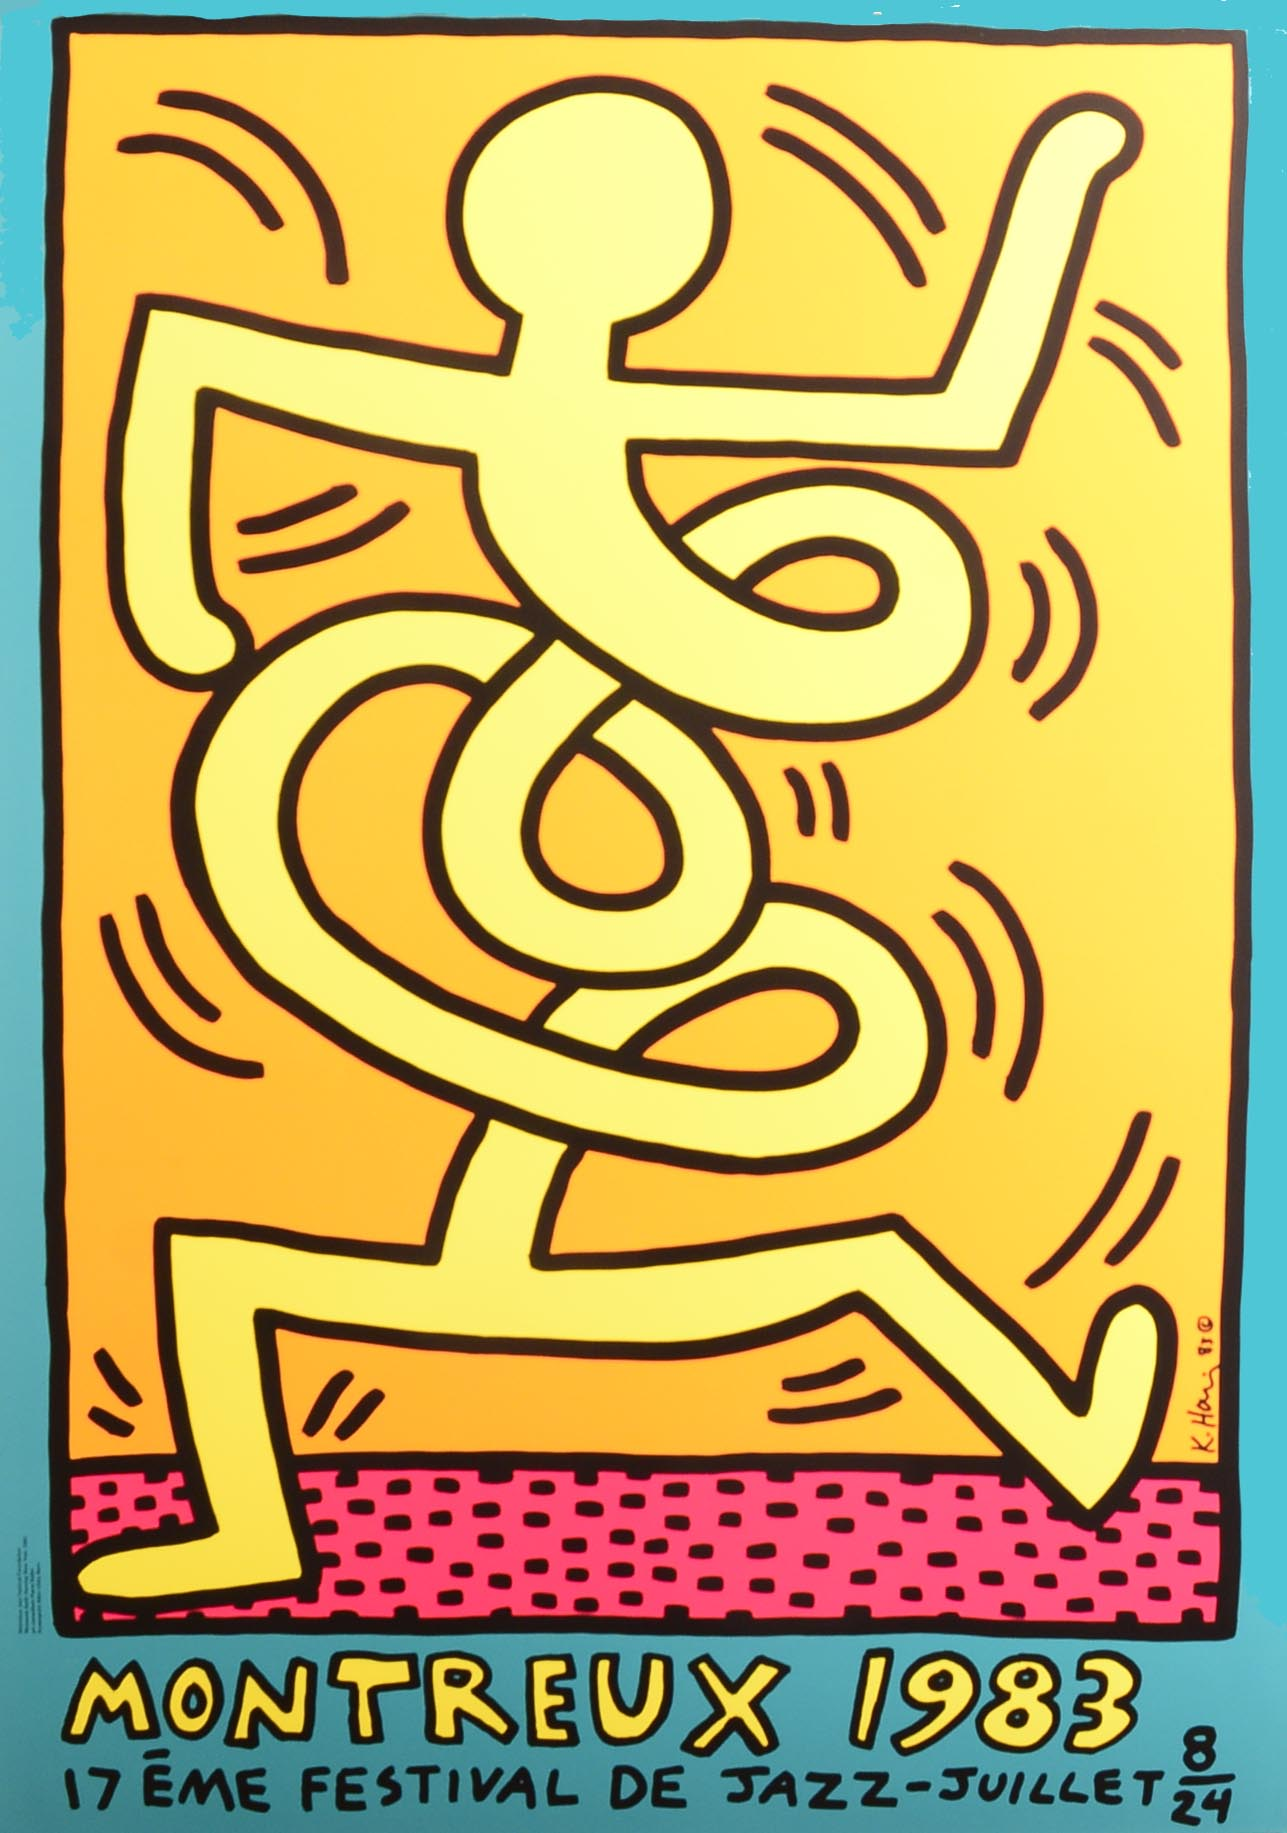 Montreux Jazz Festival 1983 POSTER 2 by Keith Haring